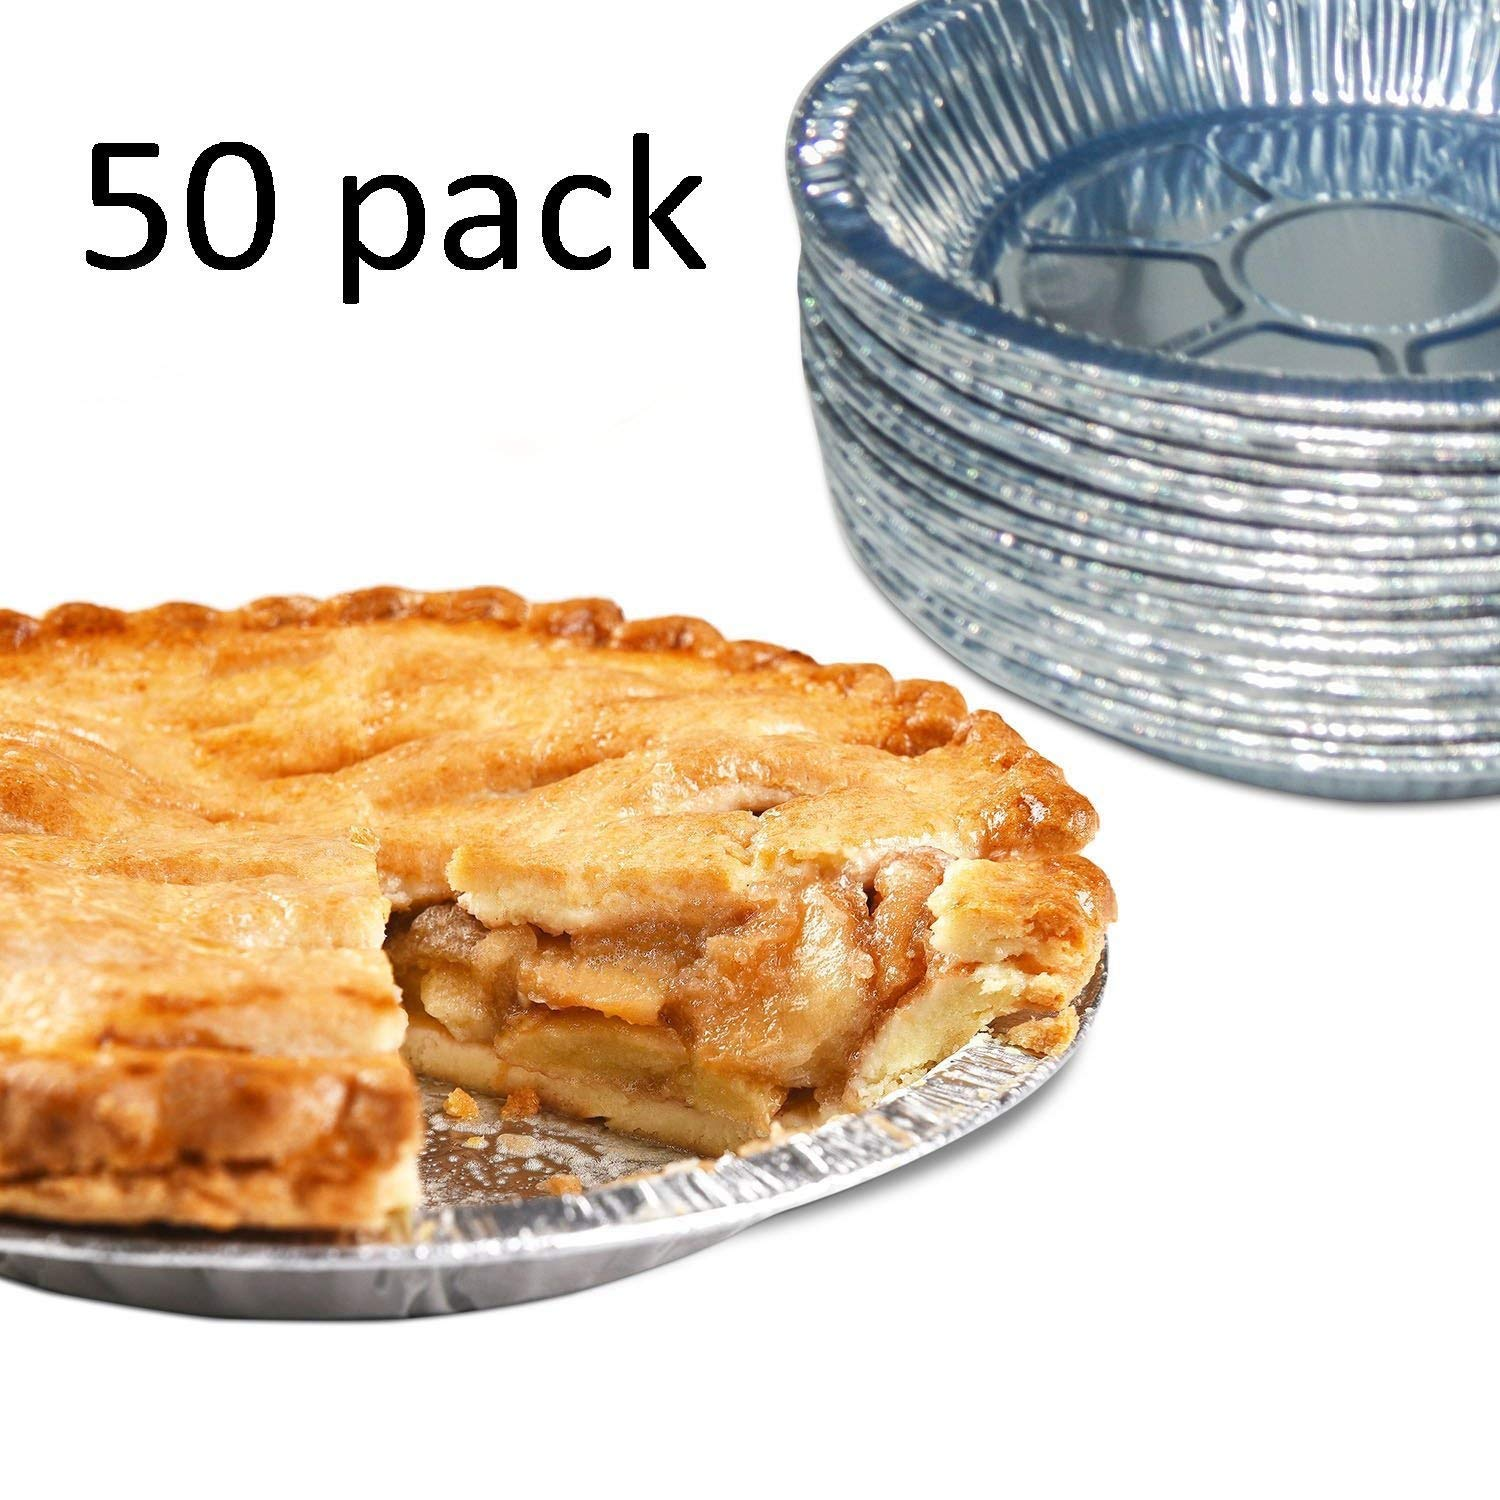 9'' Round Pie Pans (50 Pack) Disposable Aluminum Foil Pie Plates with Board lid, Standard Size, 9'' x 1.25'' by Orangehome (Image #3)